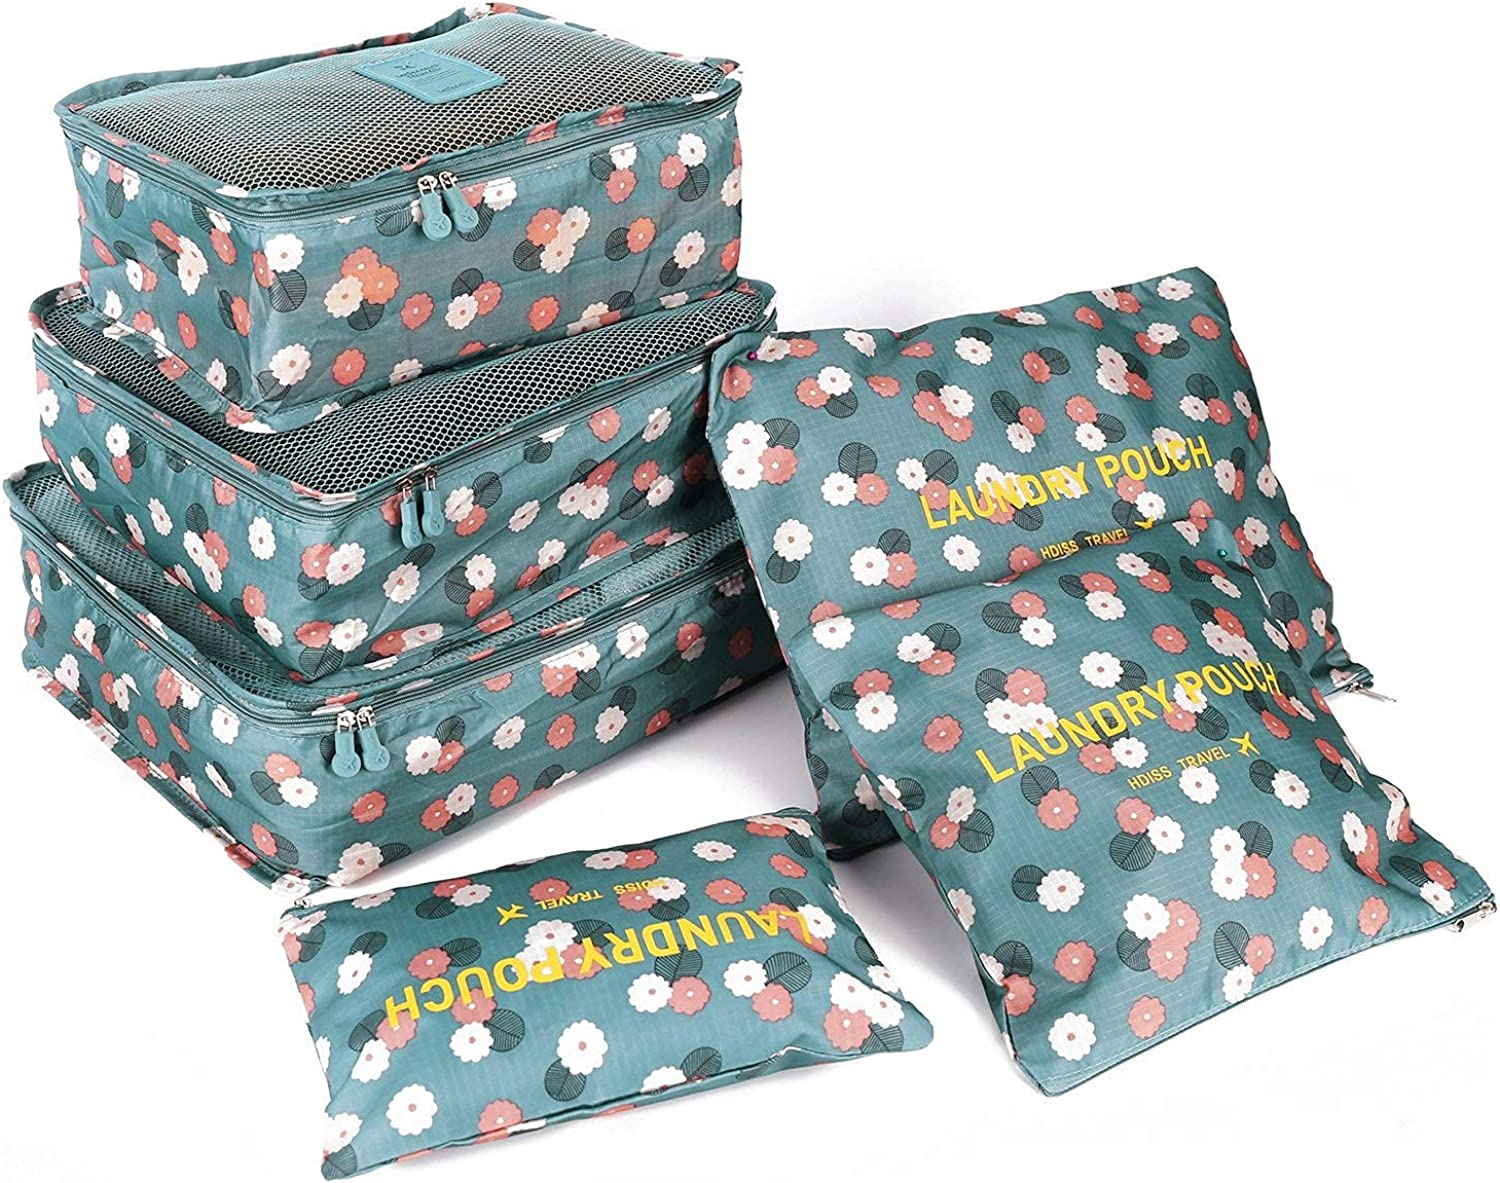 FiveRen Packing Cubes - 6Pcs Sales of SALE items from Atlanta Mall new works Travel Bags Luggage B for Organiser